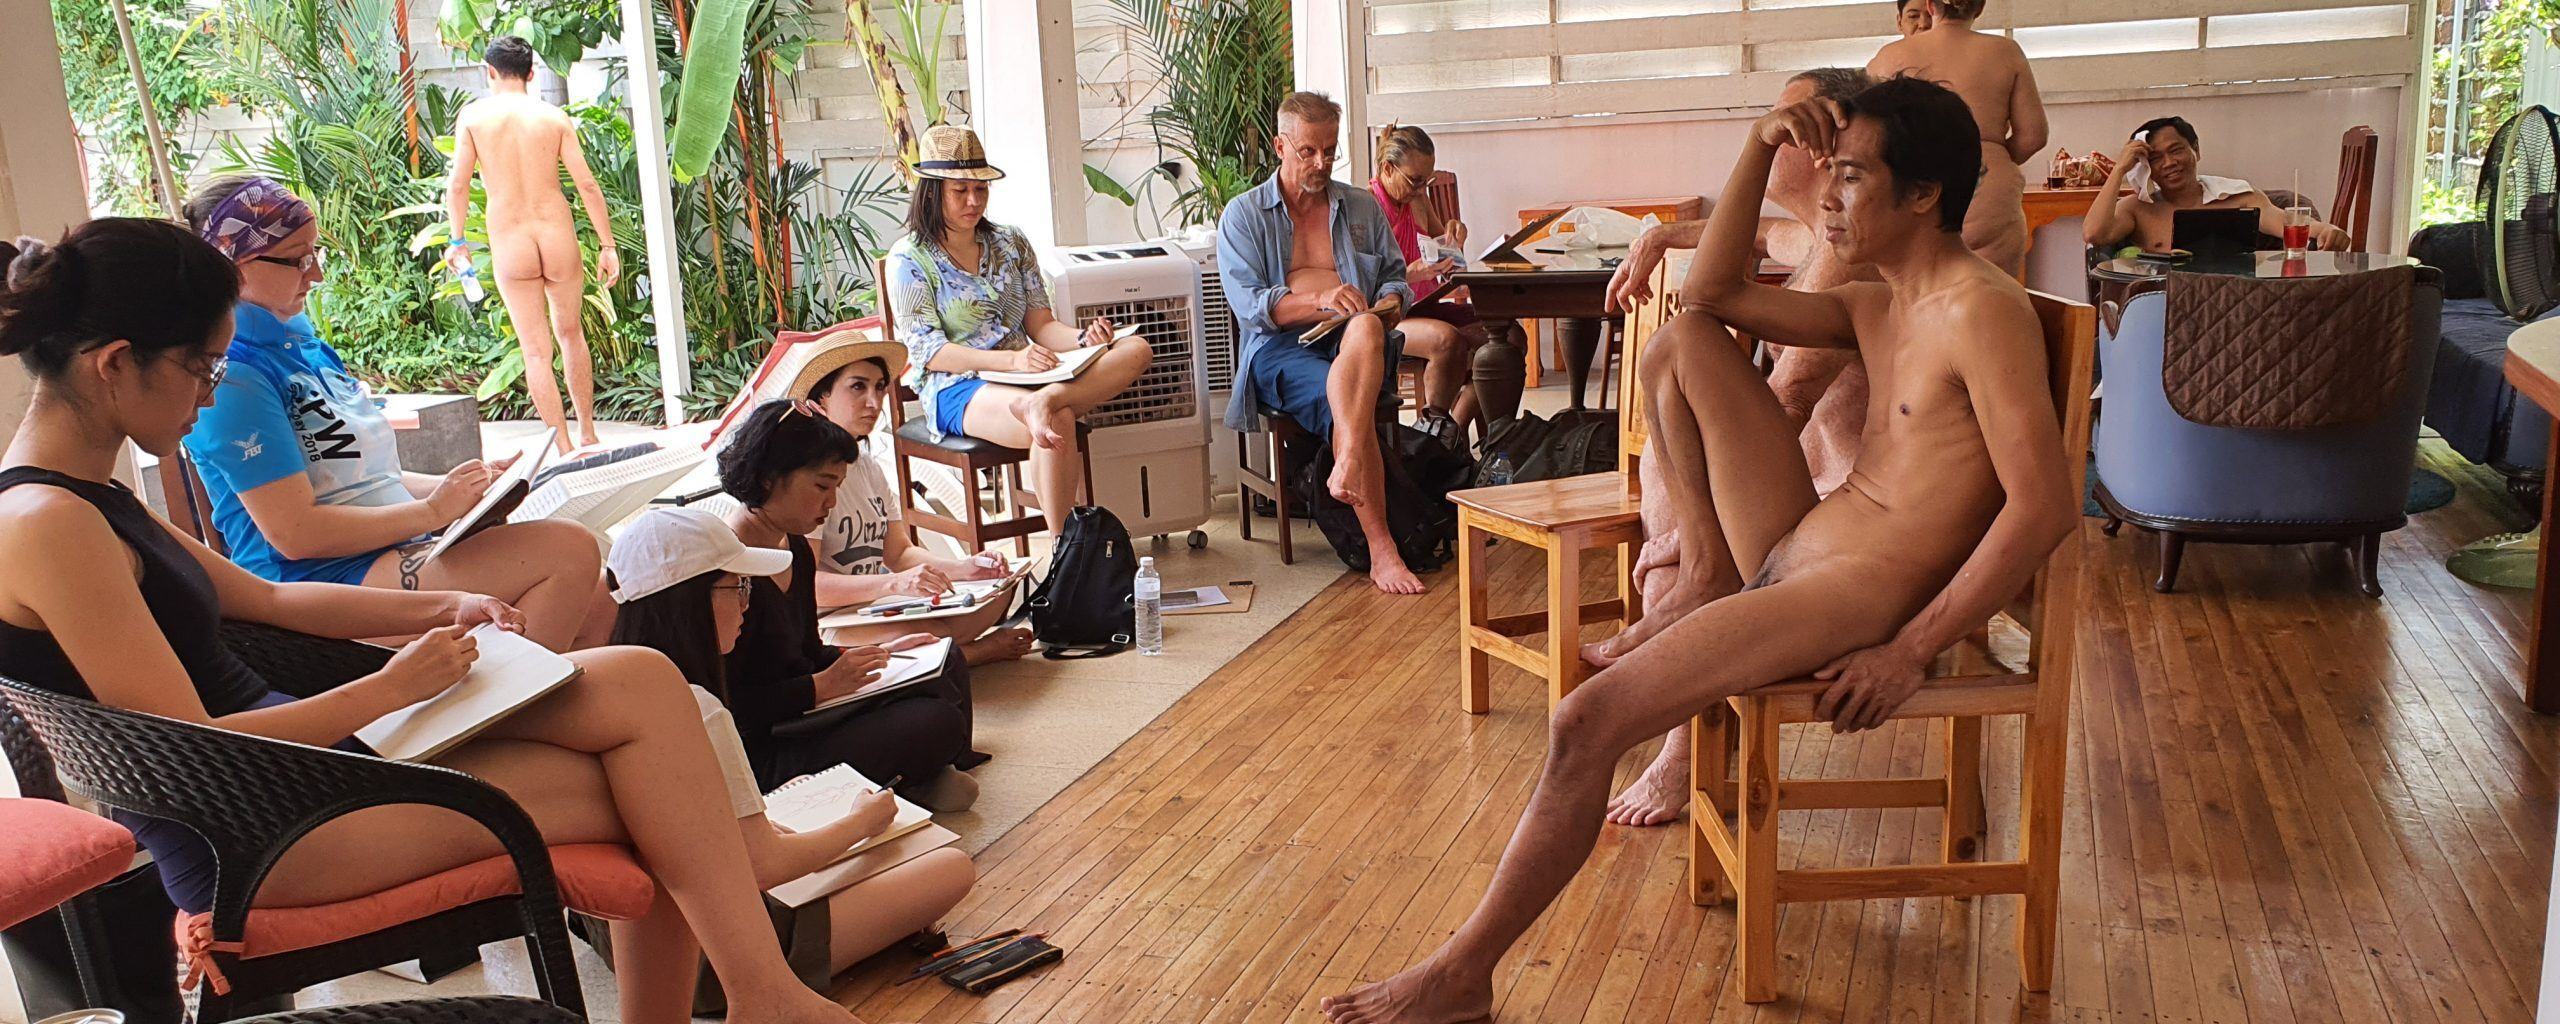 Naked Wonder: Why should you be a nude life model?